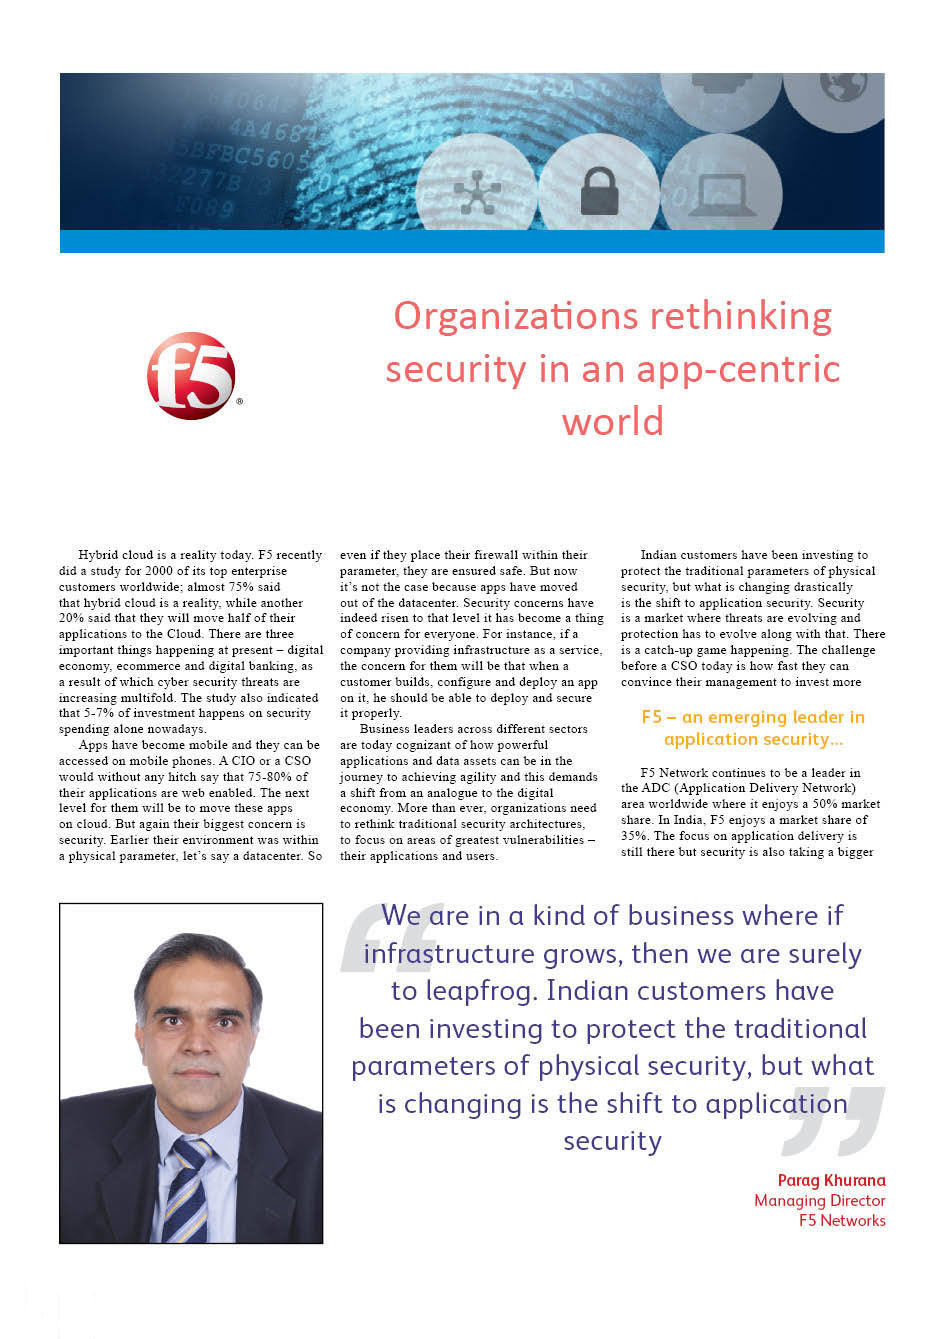 F5: Organizations rethinking security in an app-centric world